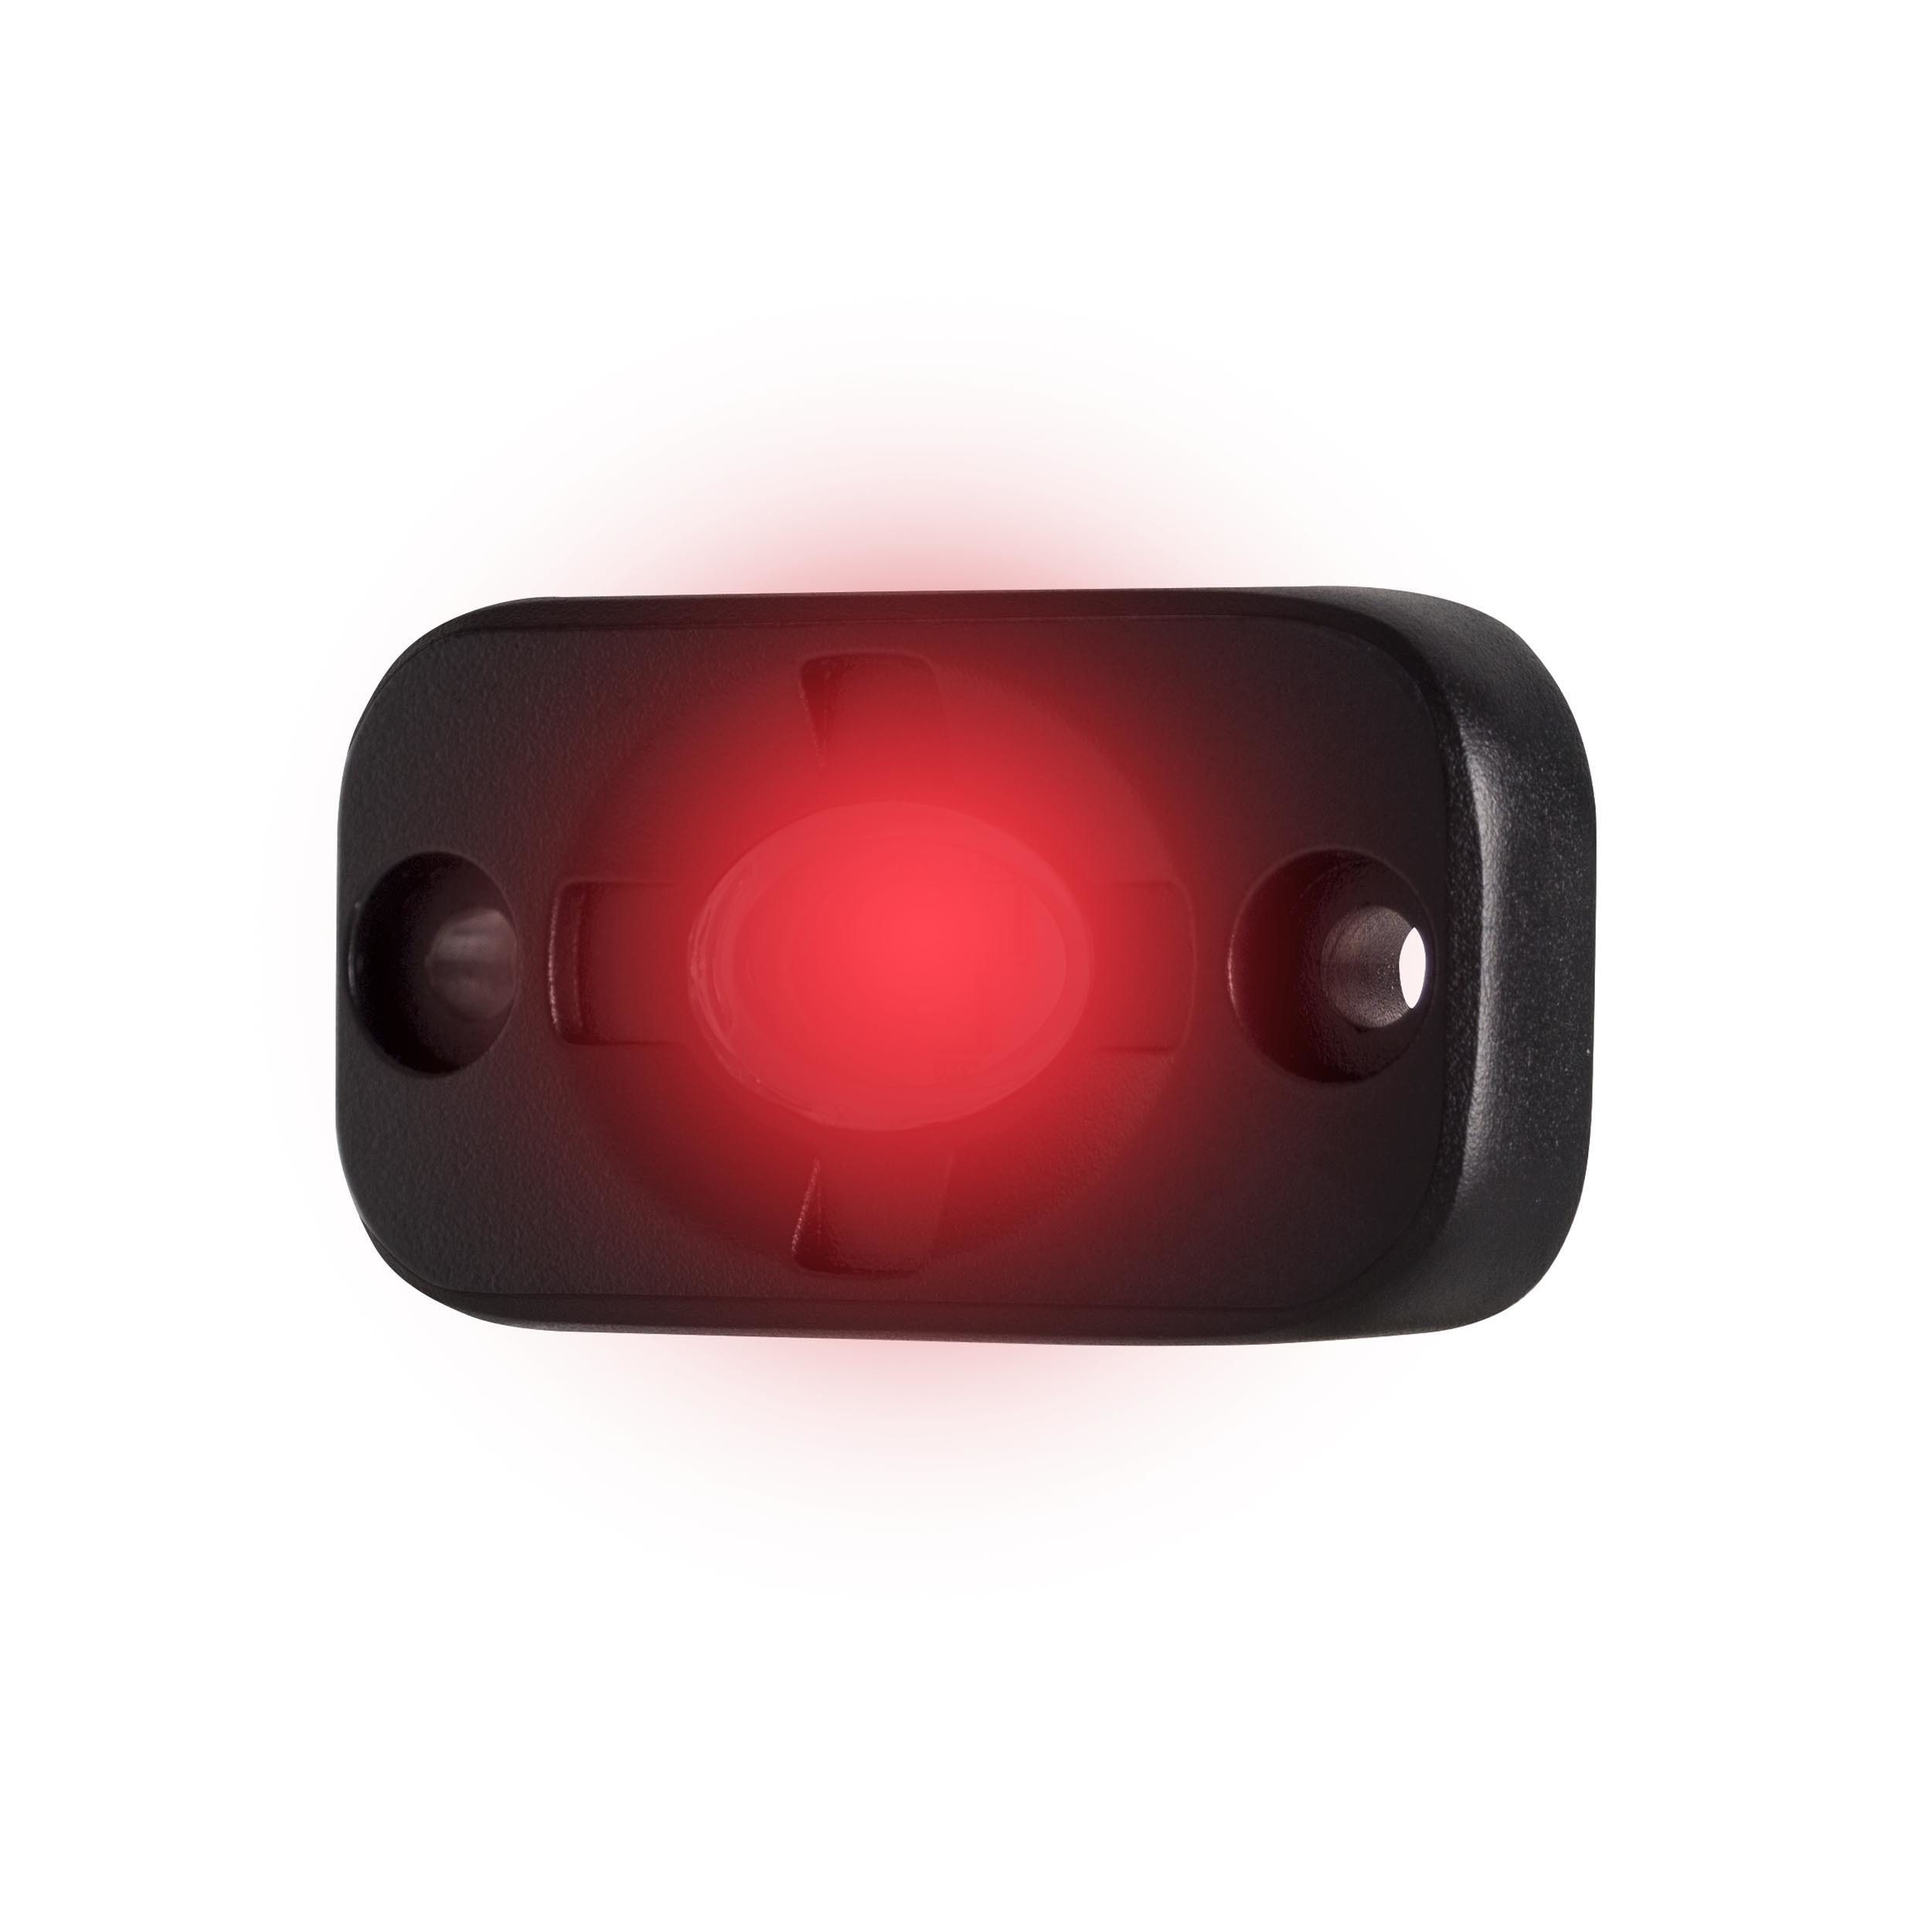 Red Auxiliary Lighting Pod - 1.5x3 Inch, 3 LED